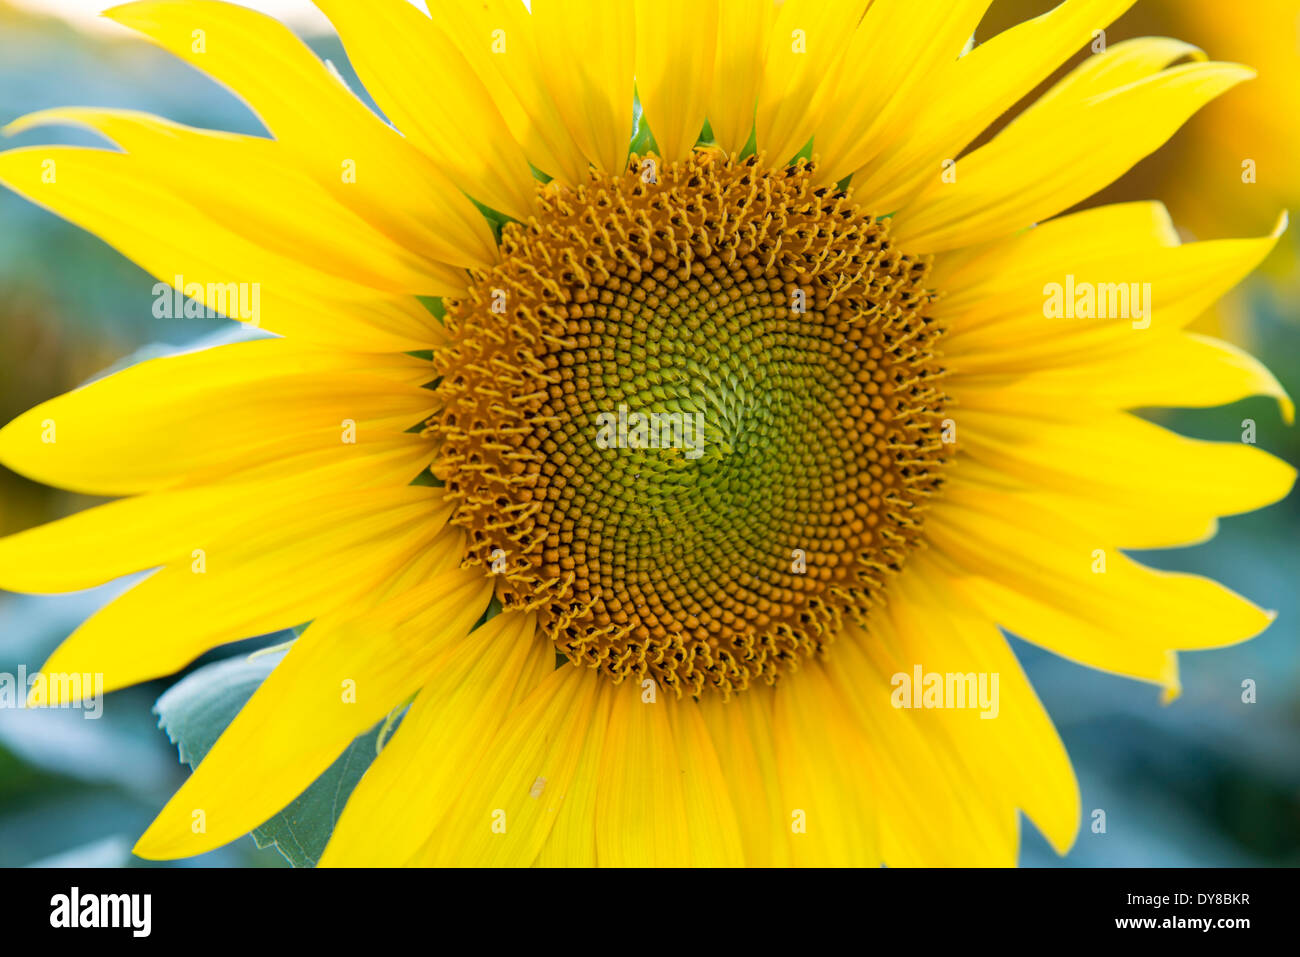 Blossom, Flourish, covers, Helianthus annuus, composites, patterns, sunflower, intense - Stock Image